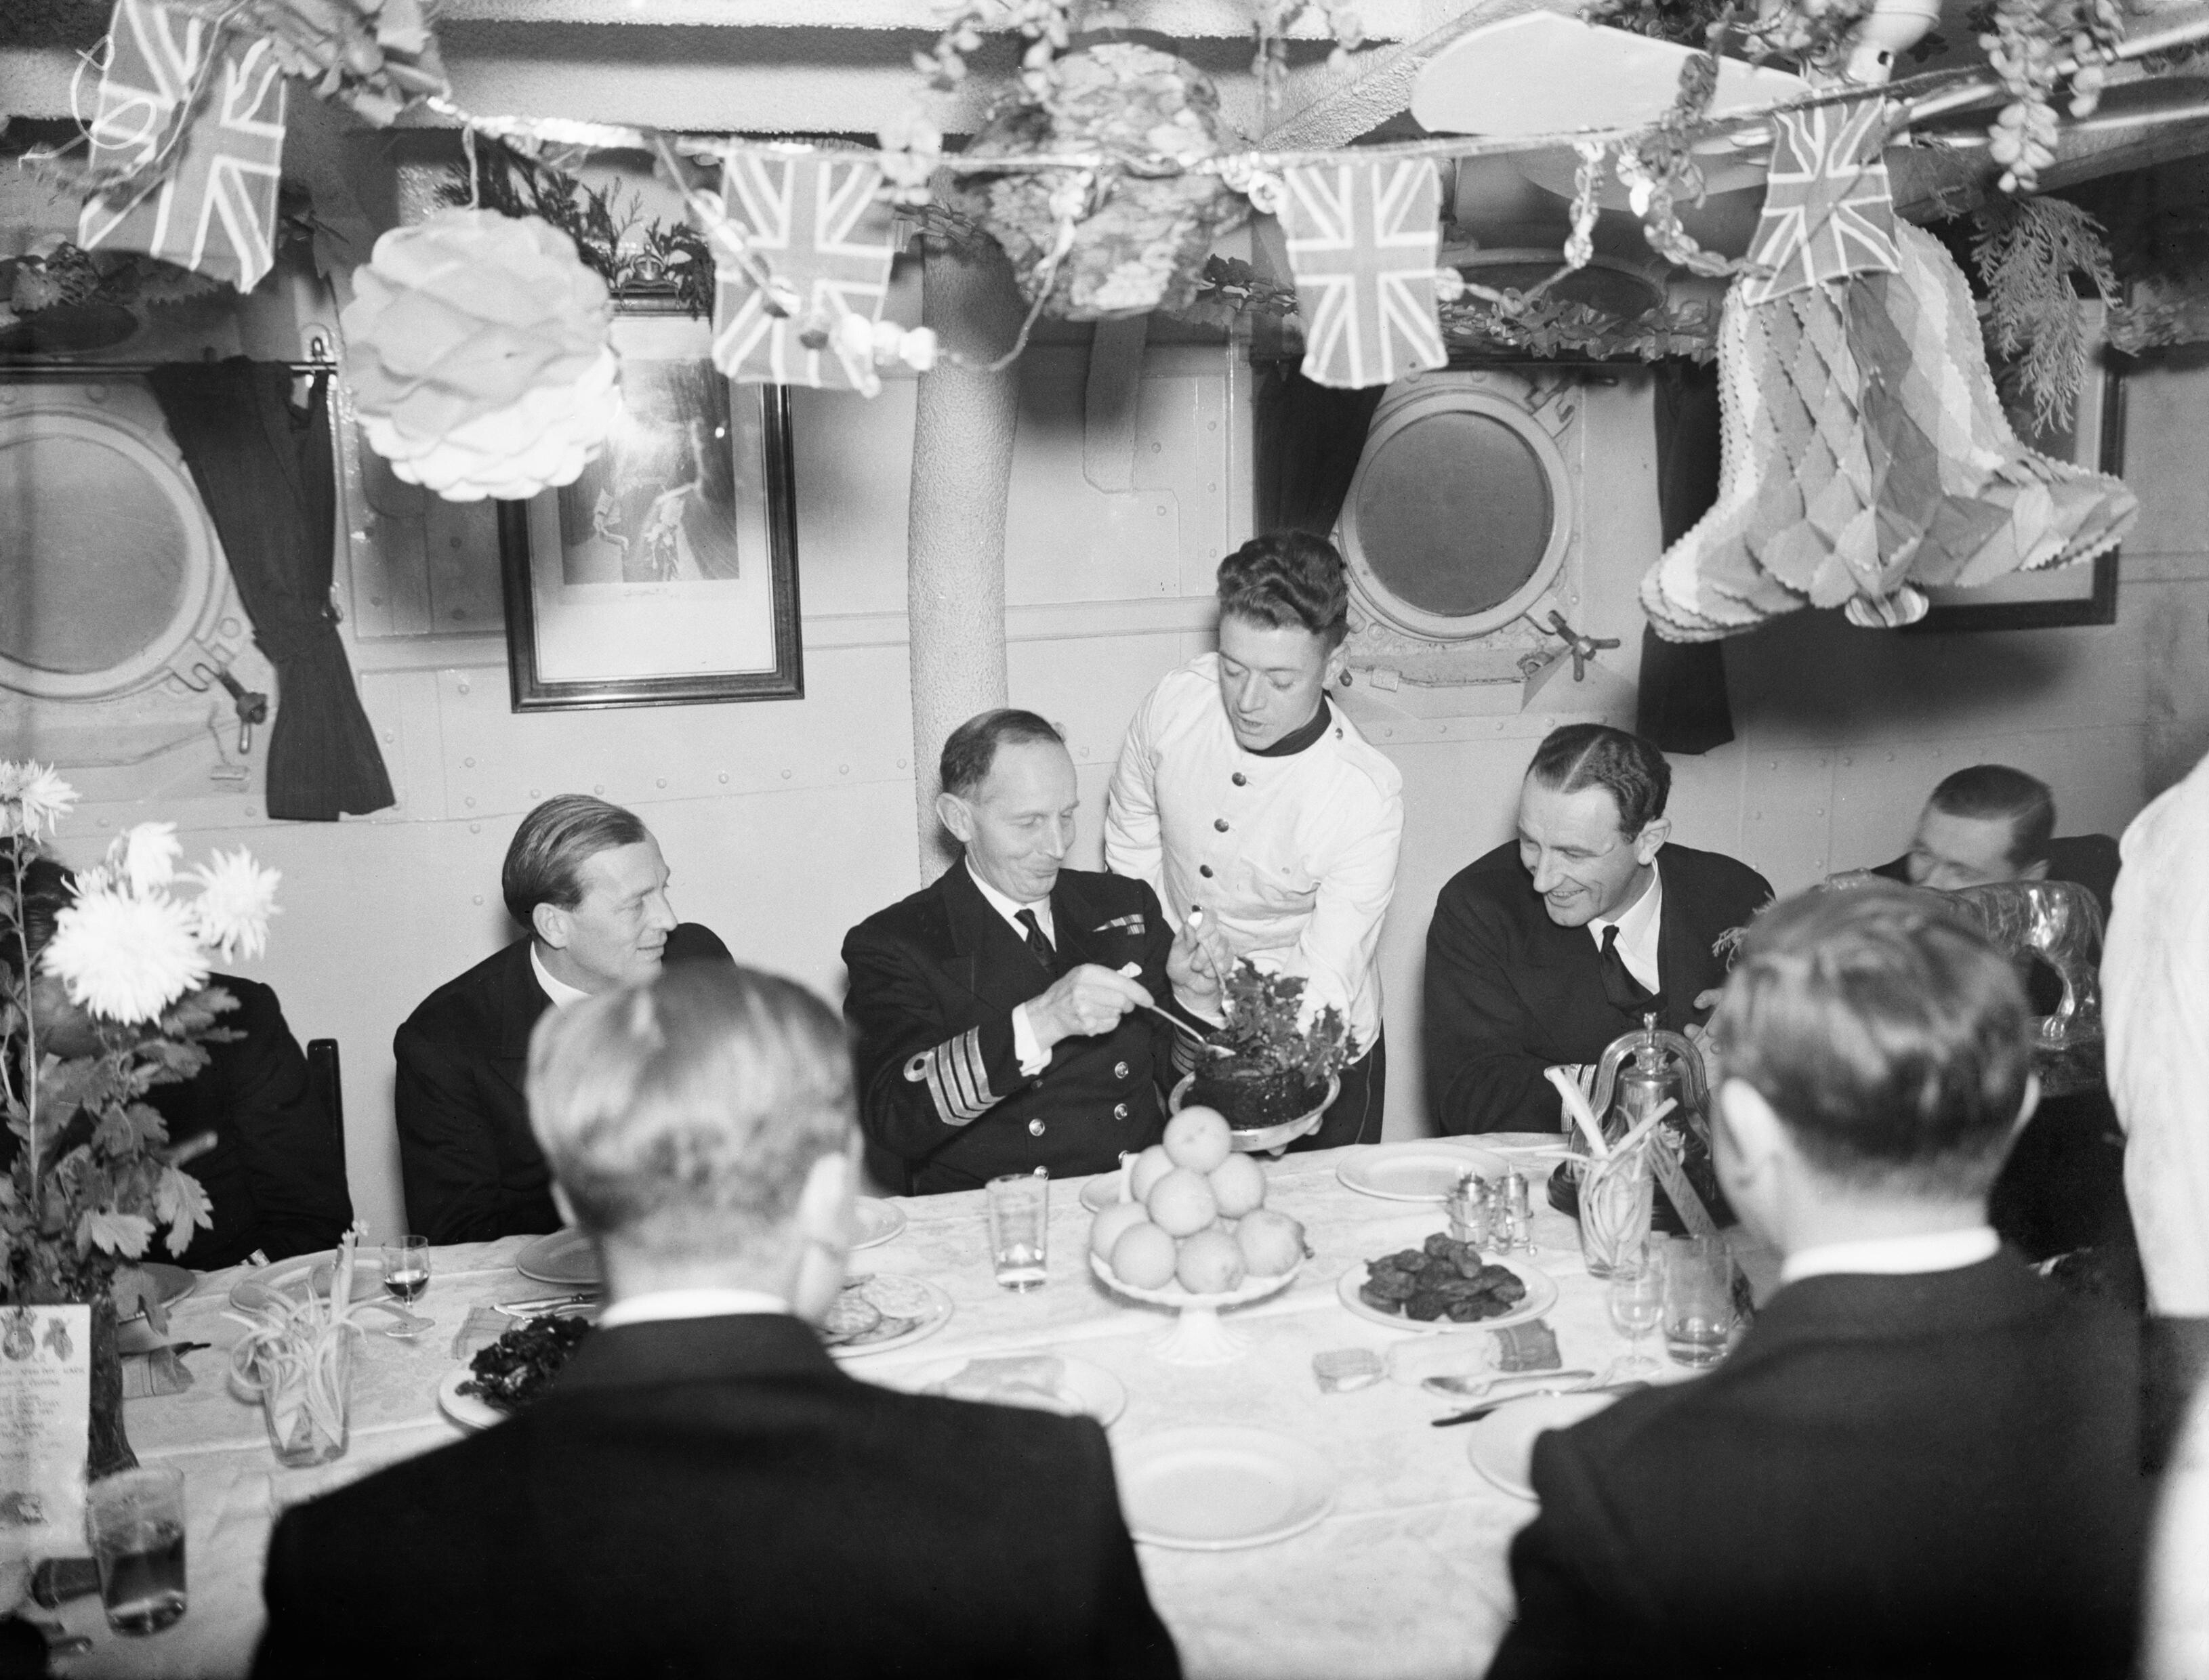 Christmas table decorations - File The Captain Of Hms Malaya Helping Himself To Plum